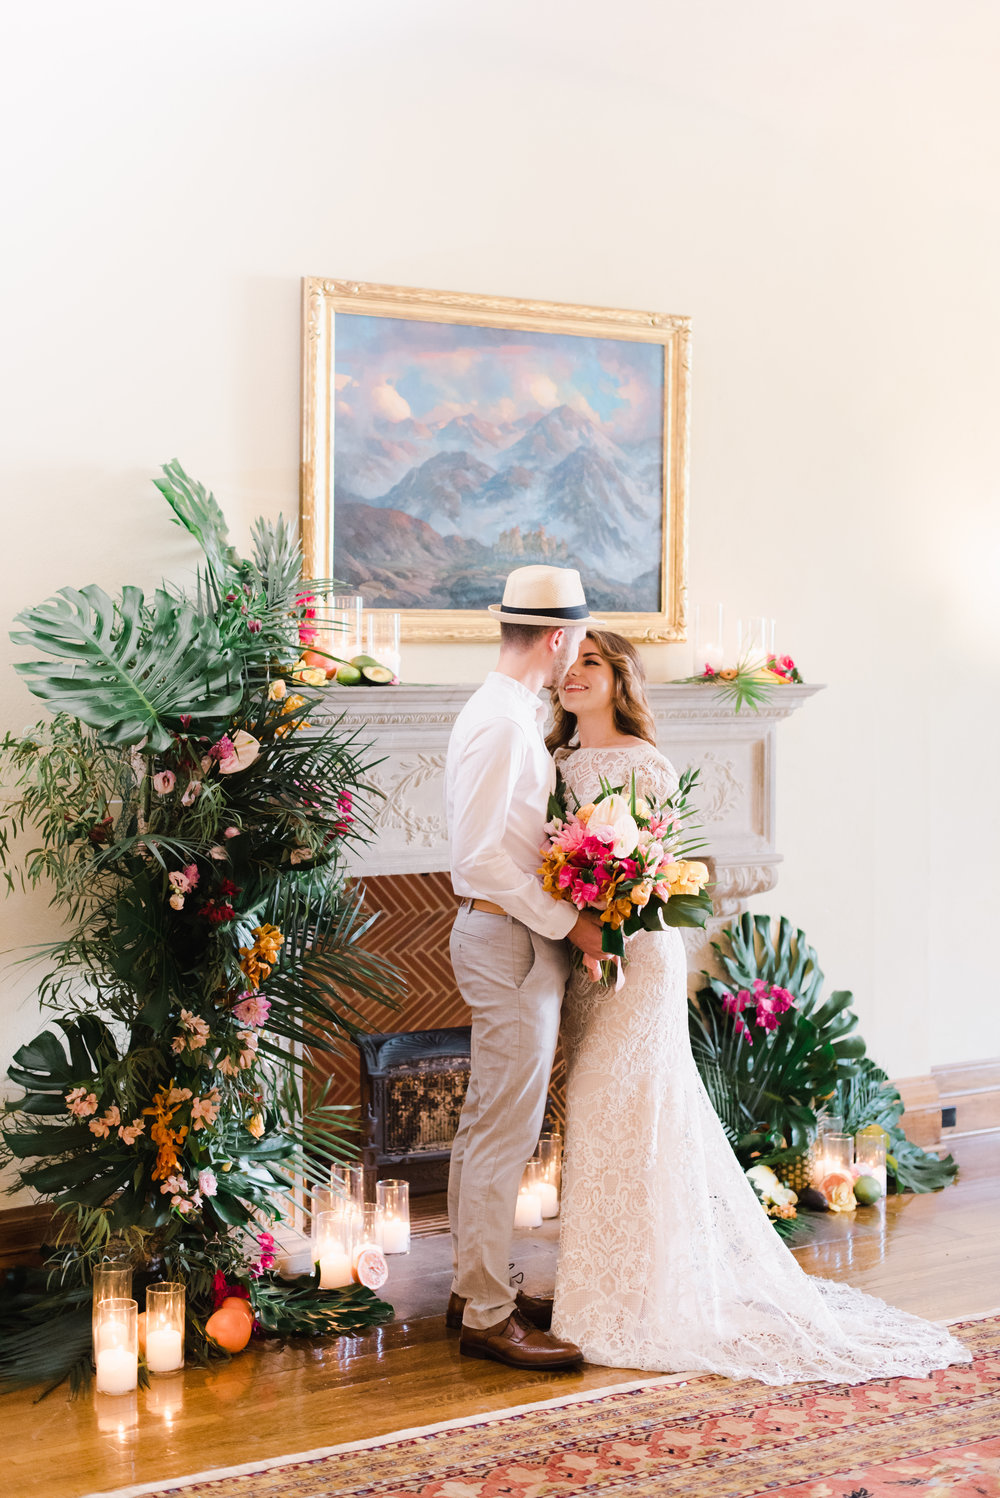 tropical flowers used on a fireplace as a wedding altar.jpg